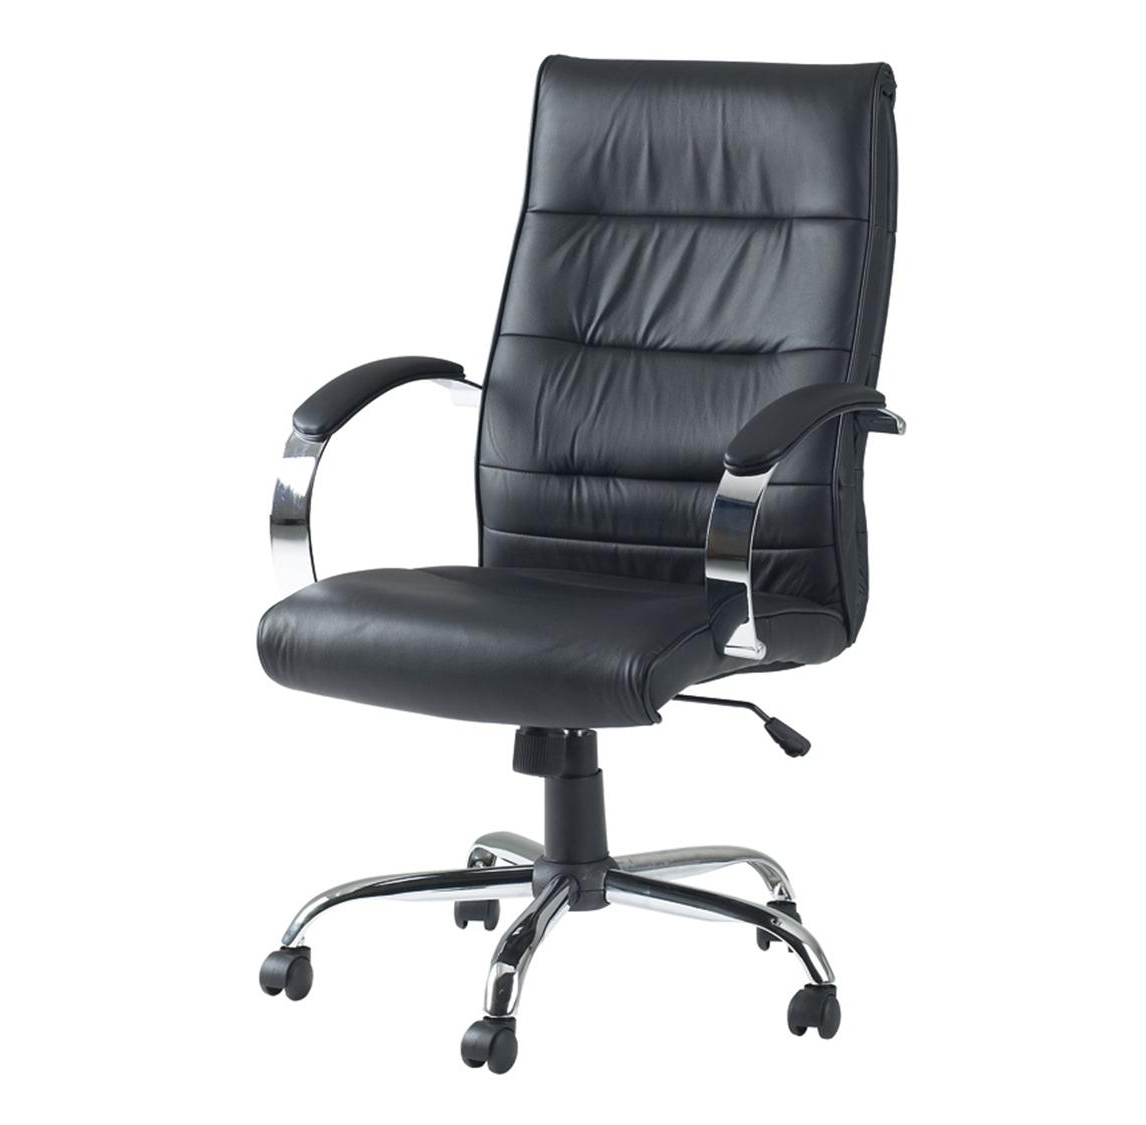 High End Executive Office Chairs In Favorite Chairs : Green Leather Office Chair Leather Office Desk High End (View 17 of 20)